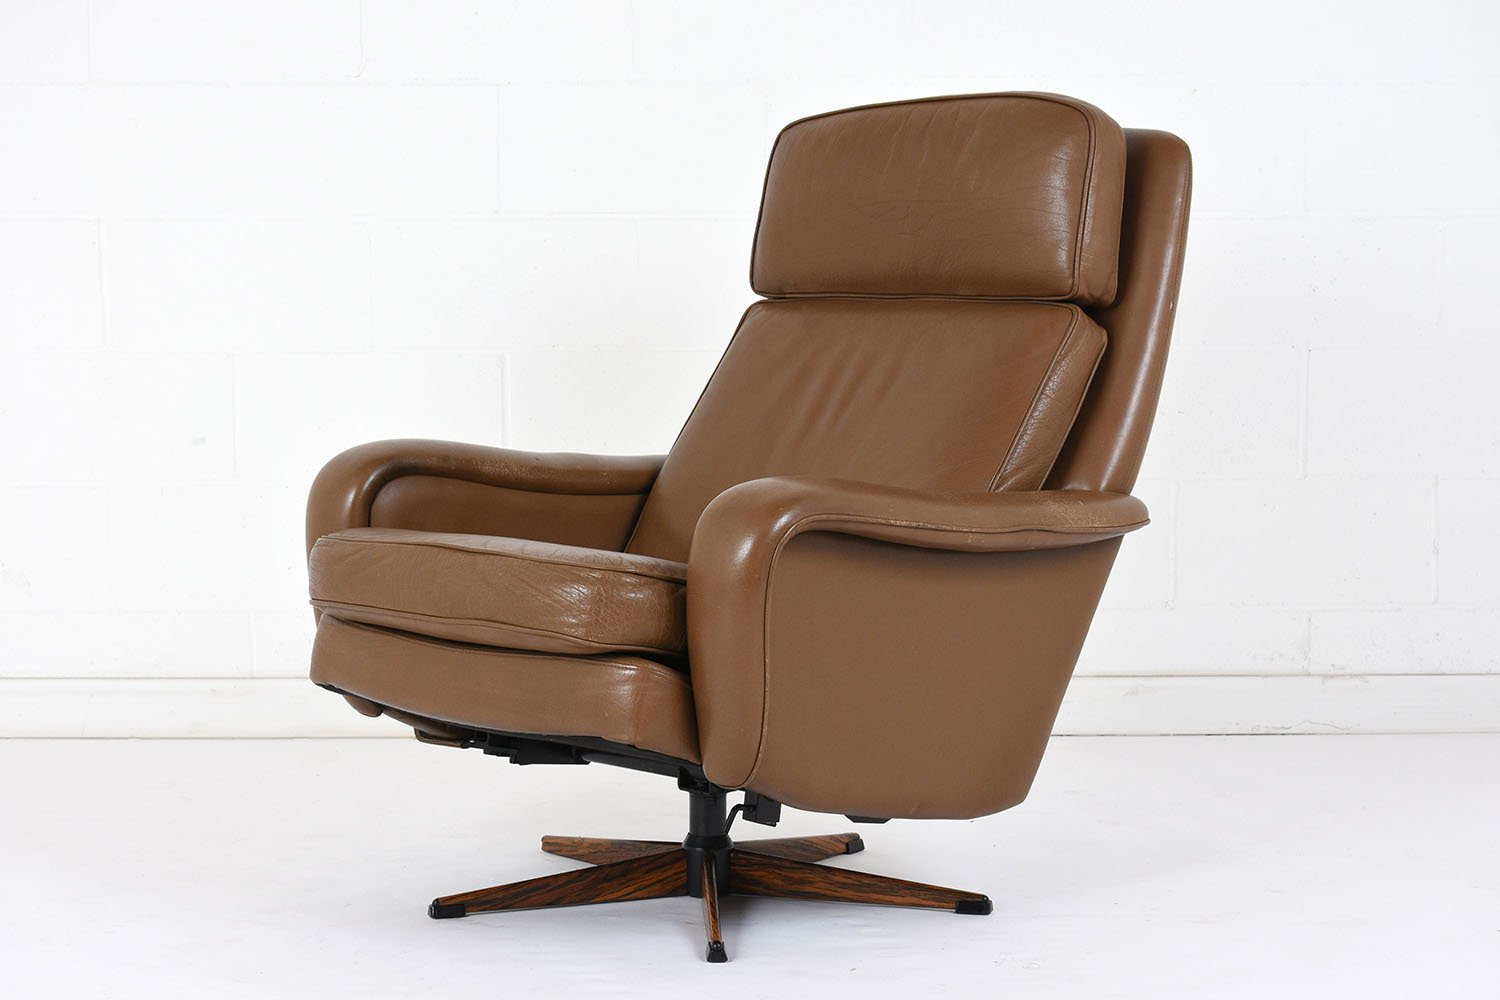 Vintage Leather Lounge Chair And Ottoman 1960s For Sale At Pamono